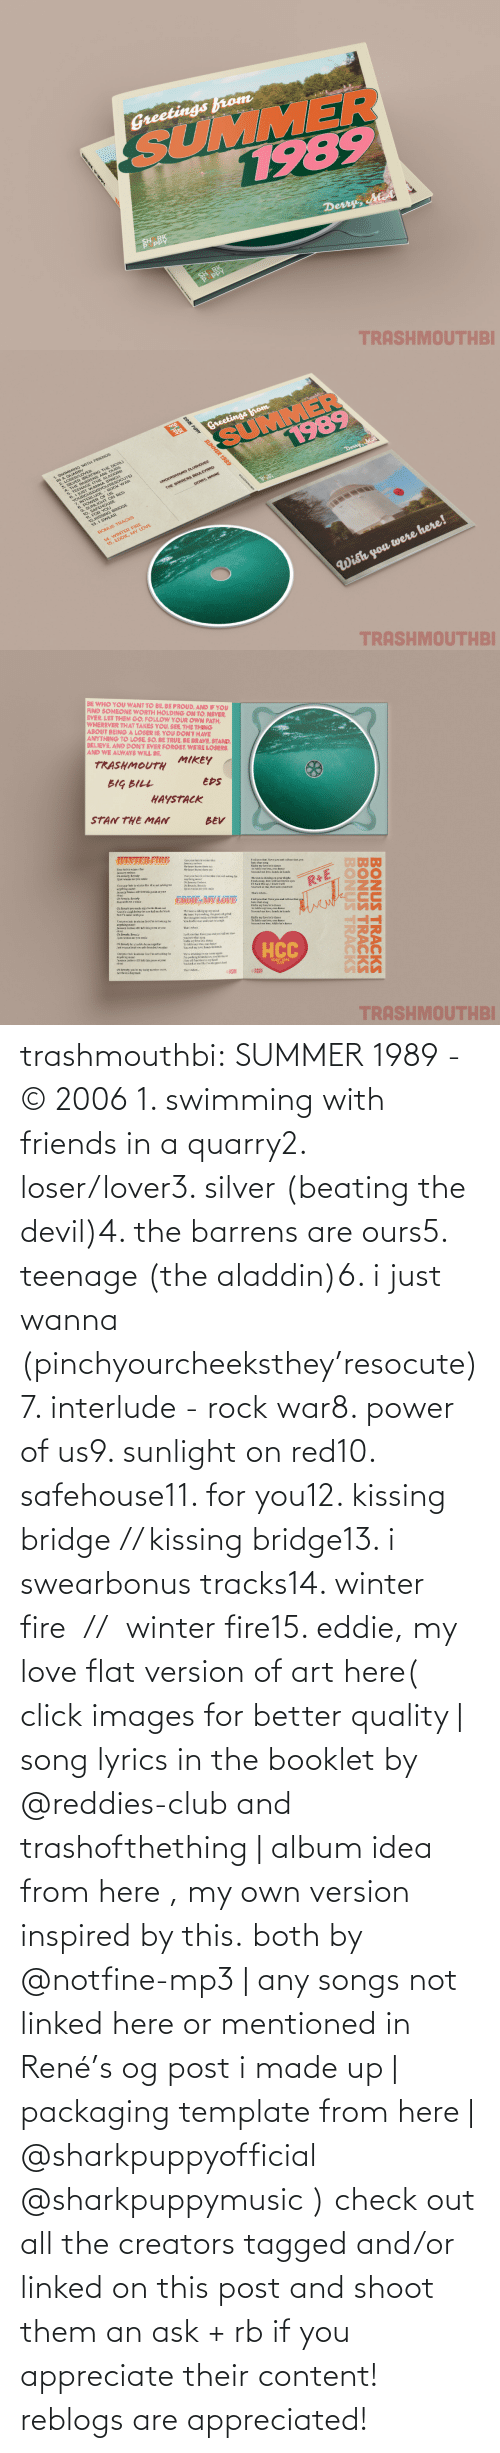 Devil: trashmouthbi: SUMMER 1989 - © 2006 1. swimming with friends in a quarry2. loser/lover3. silver (beating the devil)4. the barrens are ours5. teenage (the aladdin)6. i just wanna (pinchyourcheeksthey'resocute)7. interlude - rock war8. power of us9. sunlight on red10. safehouse11. for you12. kissing bridge // kissing bridge13. i swearbonus tracks14. winter fire  //  winter fire15. eddie, my love flat version of art here( click images for better quality | song lyrics in the booklet by @reddies-club​ and trashofthething | album idea from here , my own version inspired by this. both by @notfine-mp3​ | any songs not linked here or mentioned in René's og post i made up | packaging template from here | @sharkpuppyofficial​ @sharkpuppymusic​ ) check out all the creators tagged and/or linked on this post and shoot them an ask + rb if you appreciate their content! reblogs are appreciated!